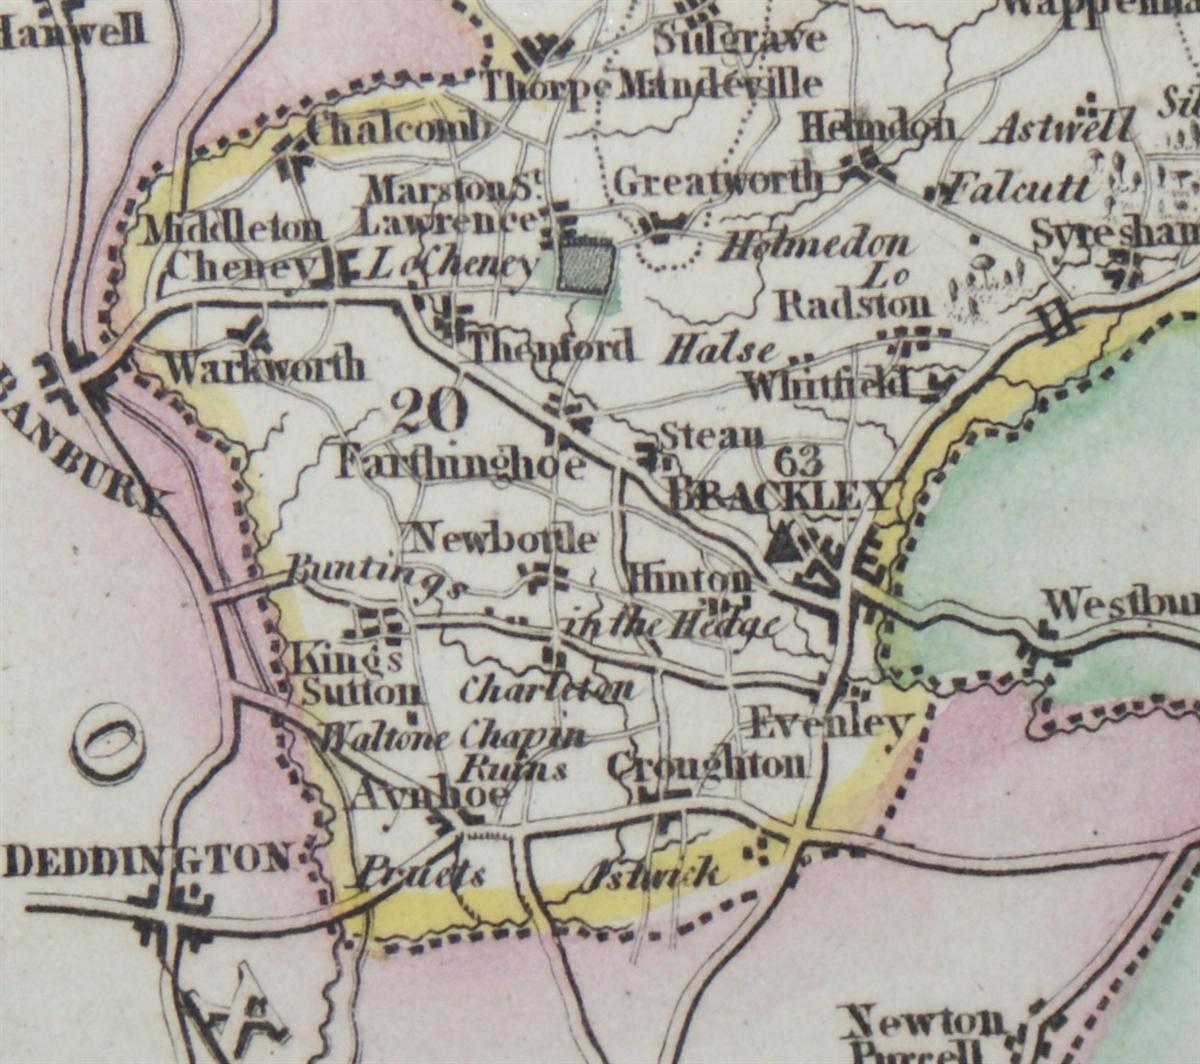 Image for 1839 Map of the County of Northamptonshire - taken from Pigot and Co's British Atlas Comprising the Counties of England (upon which are laid down all railways completed and in progress)